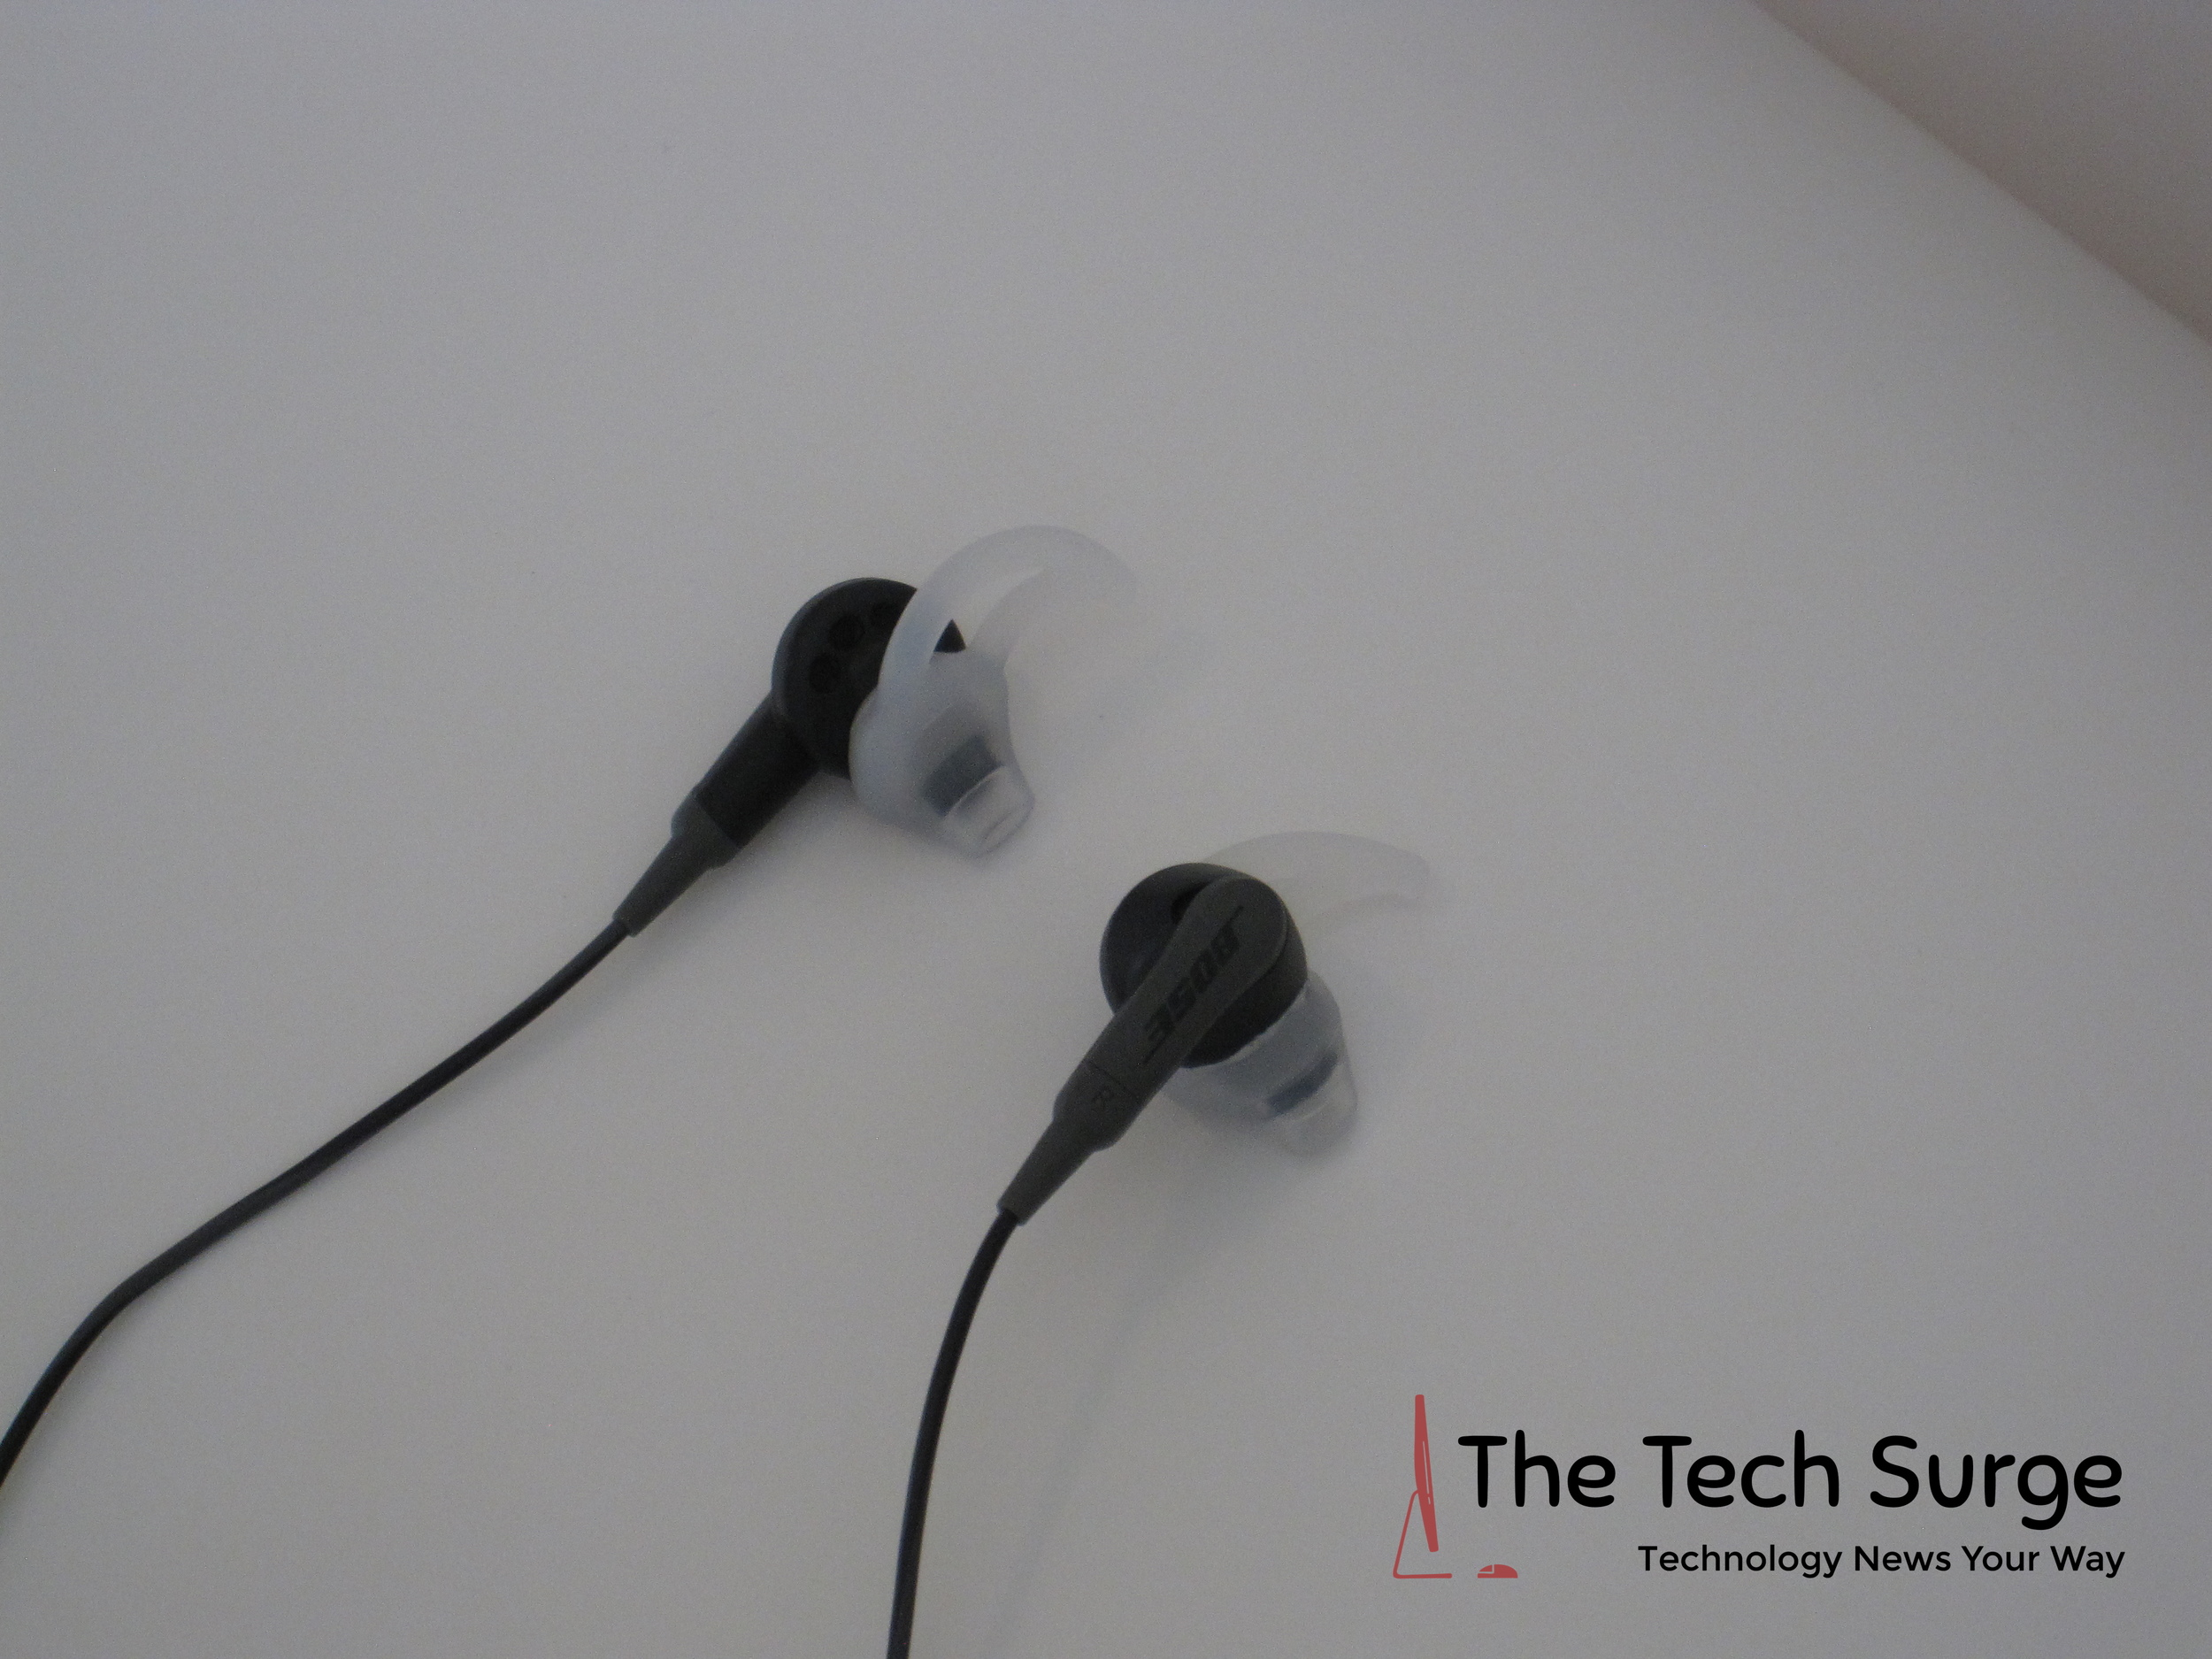 Here are the earbuds on a flat surface.